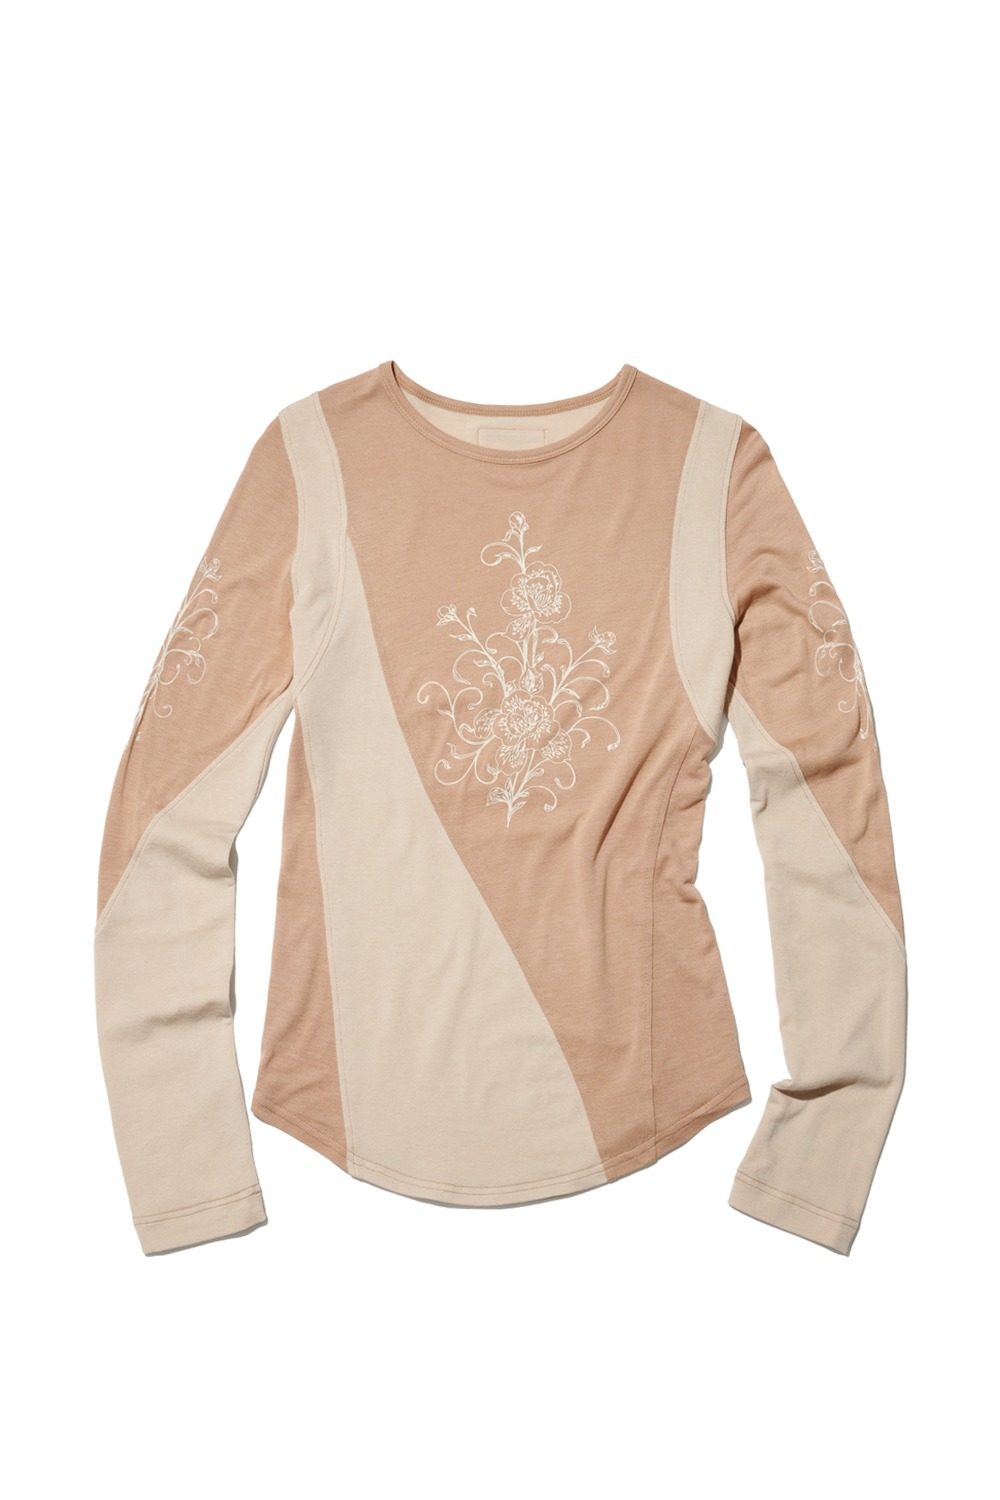 PROJECT MAGO_ORCHID COLOR-BLOCKED JERSEY TOP_BEIGE